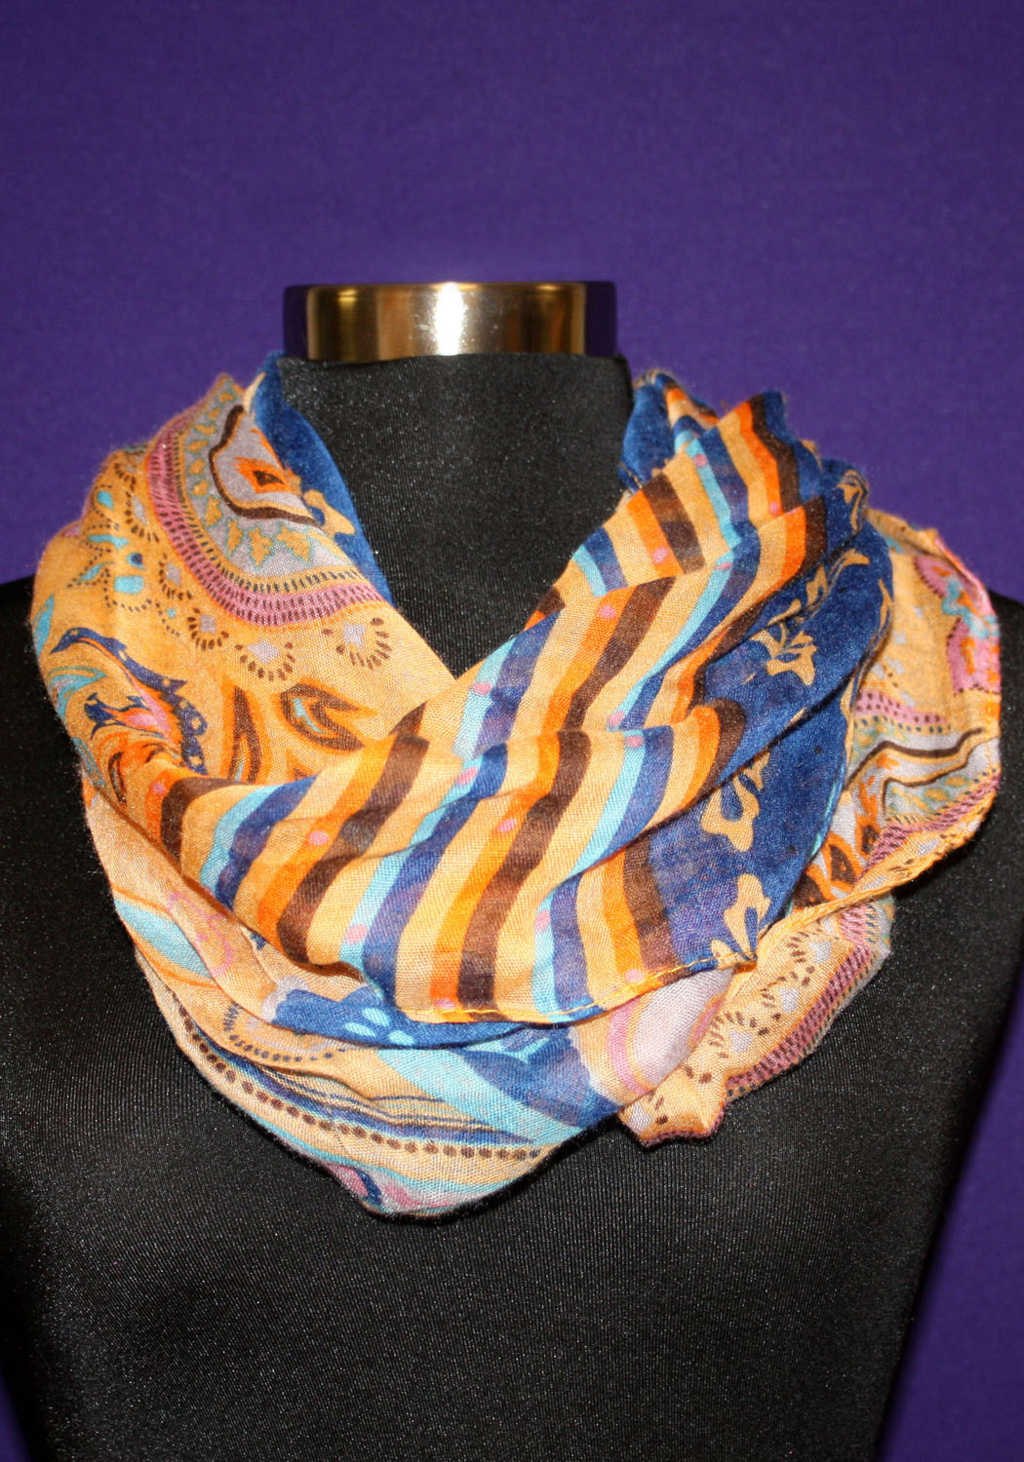 Orange and Blue Patterned Scarf available at Mon General Hospital Apparel Gift Shop